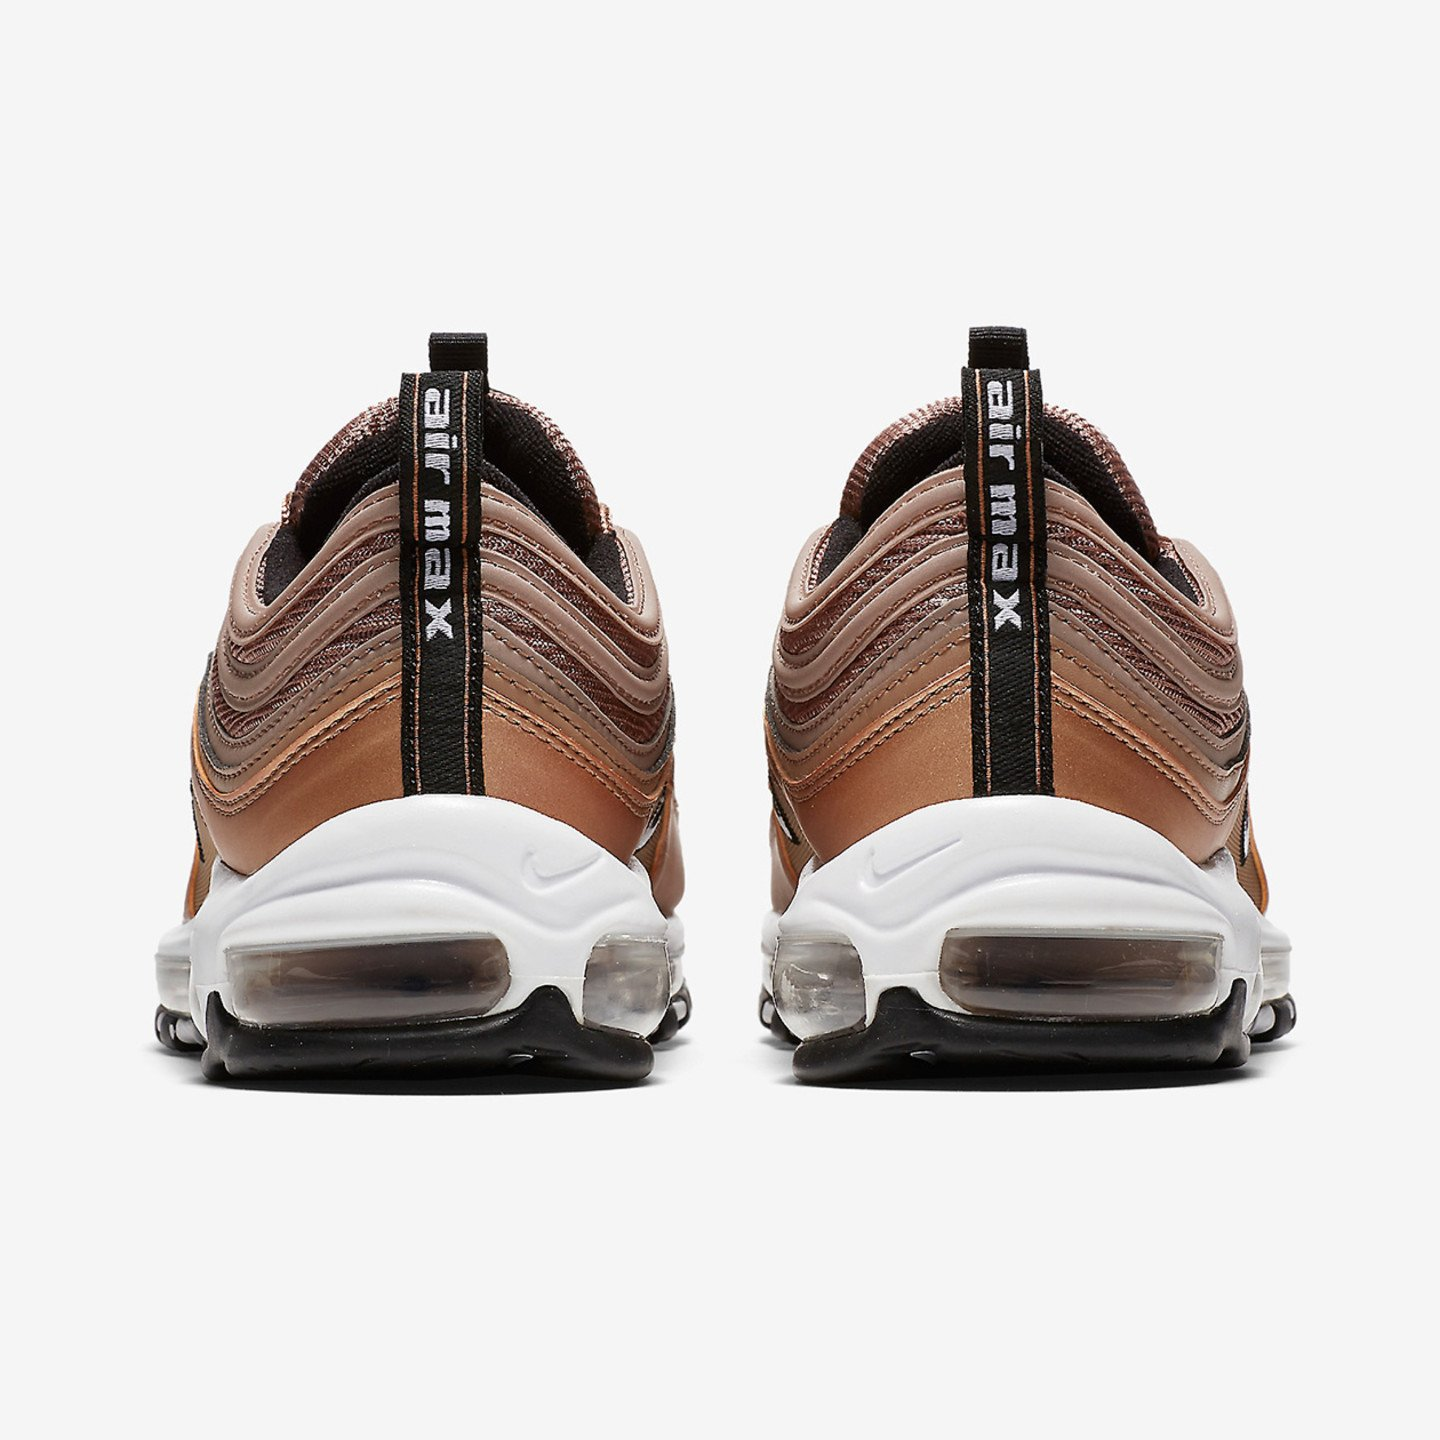 Nike Air Max 97 Desert Dust / White / Bronze / Black 921826-200